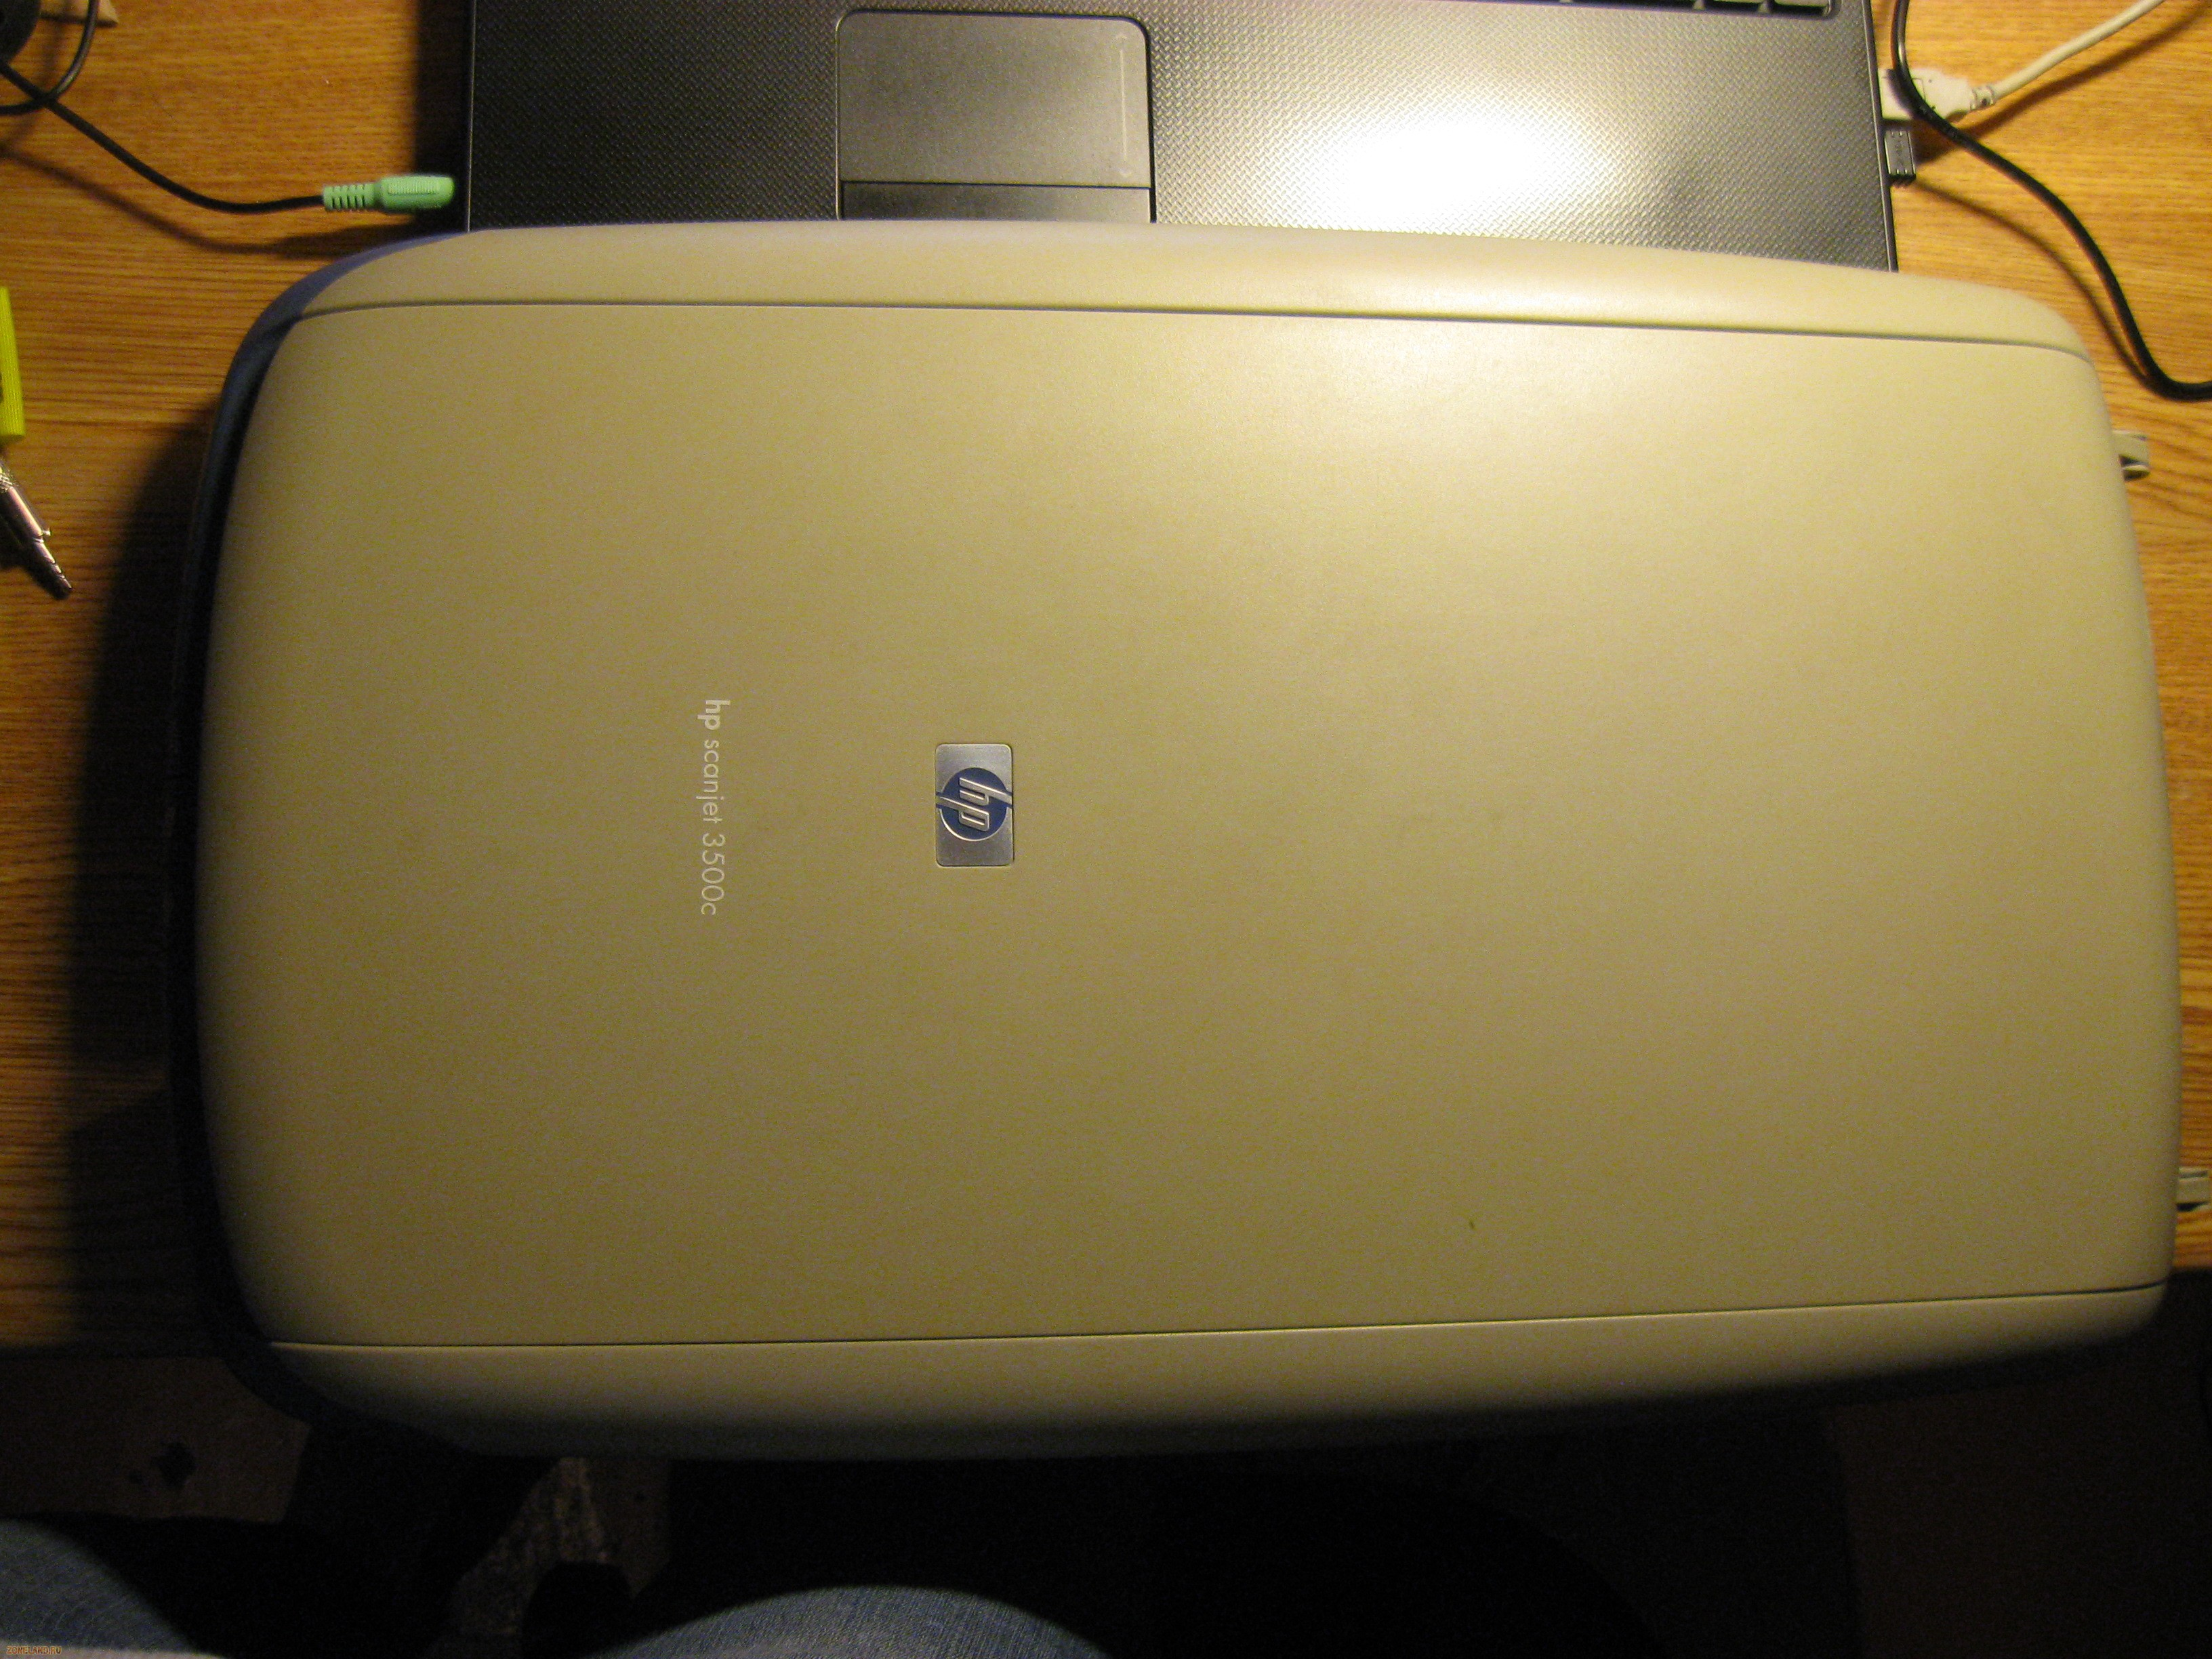 HP Scanjet G4010 Photo Scanner - Driver Downloads HP Hp scanjet g4000 photo series driver